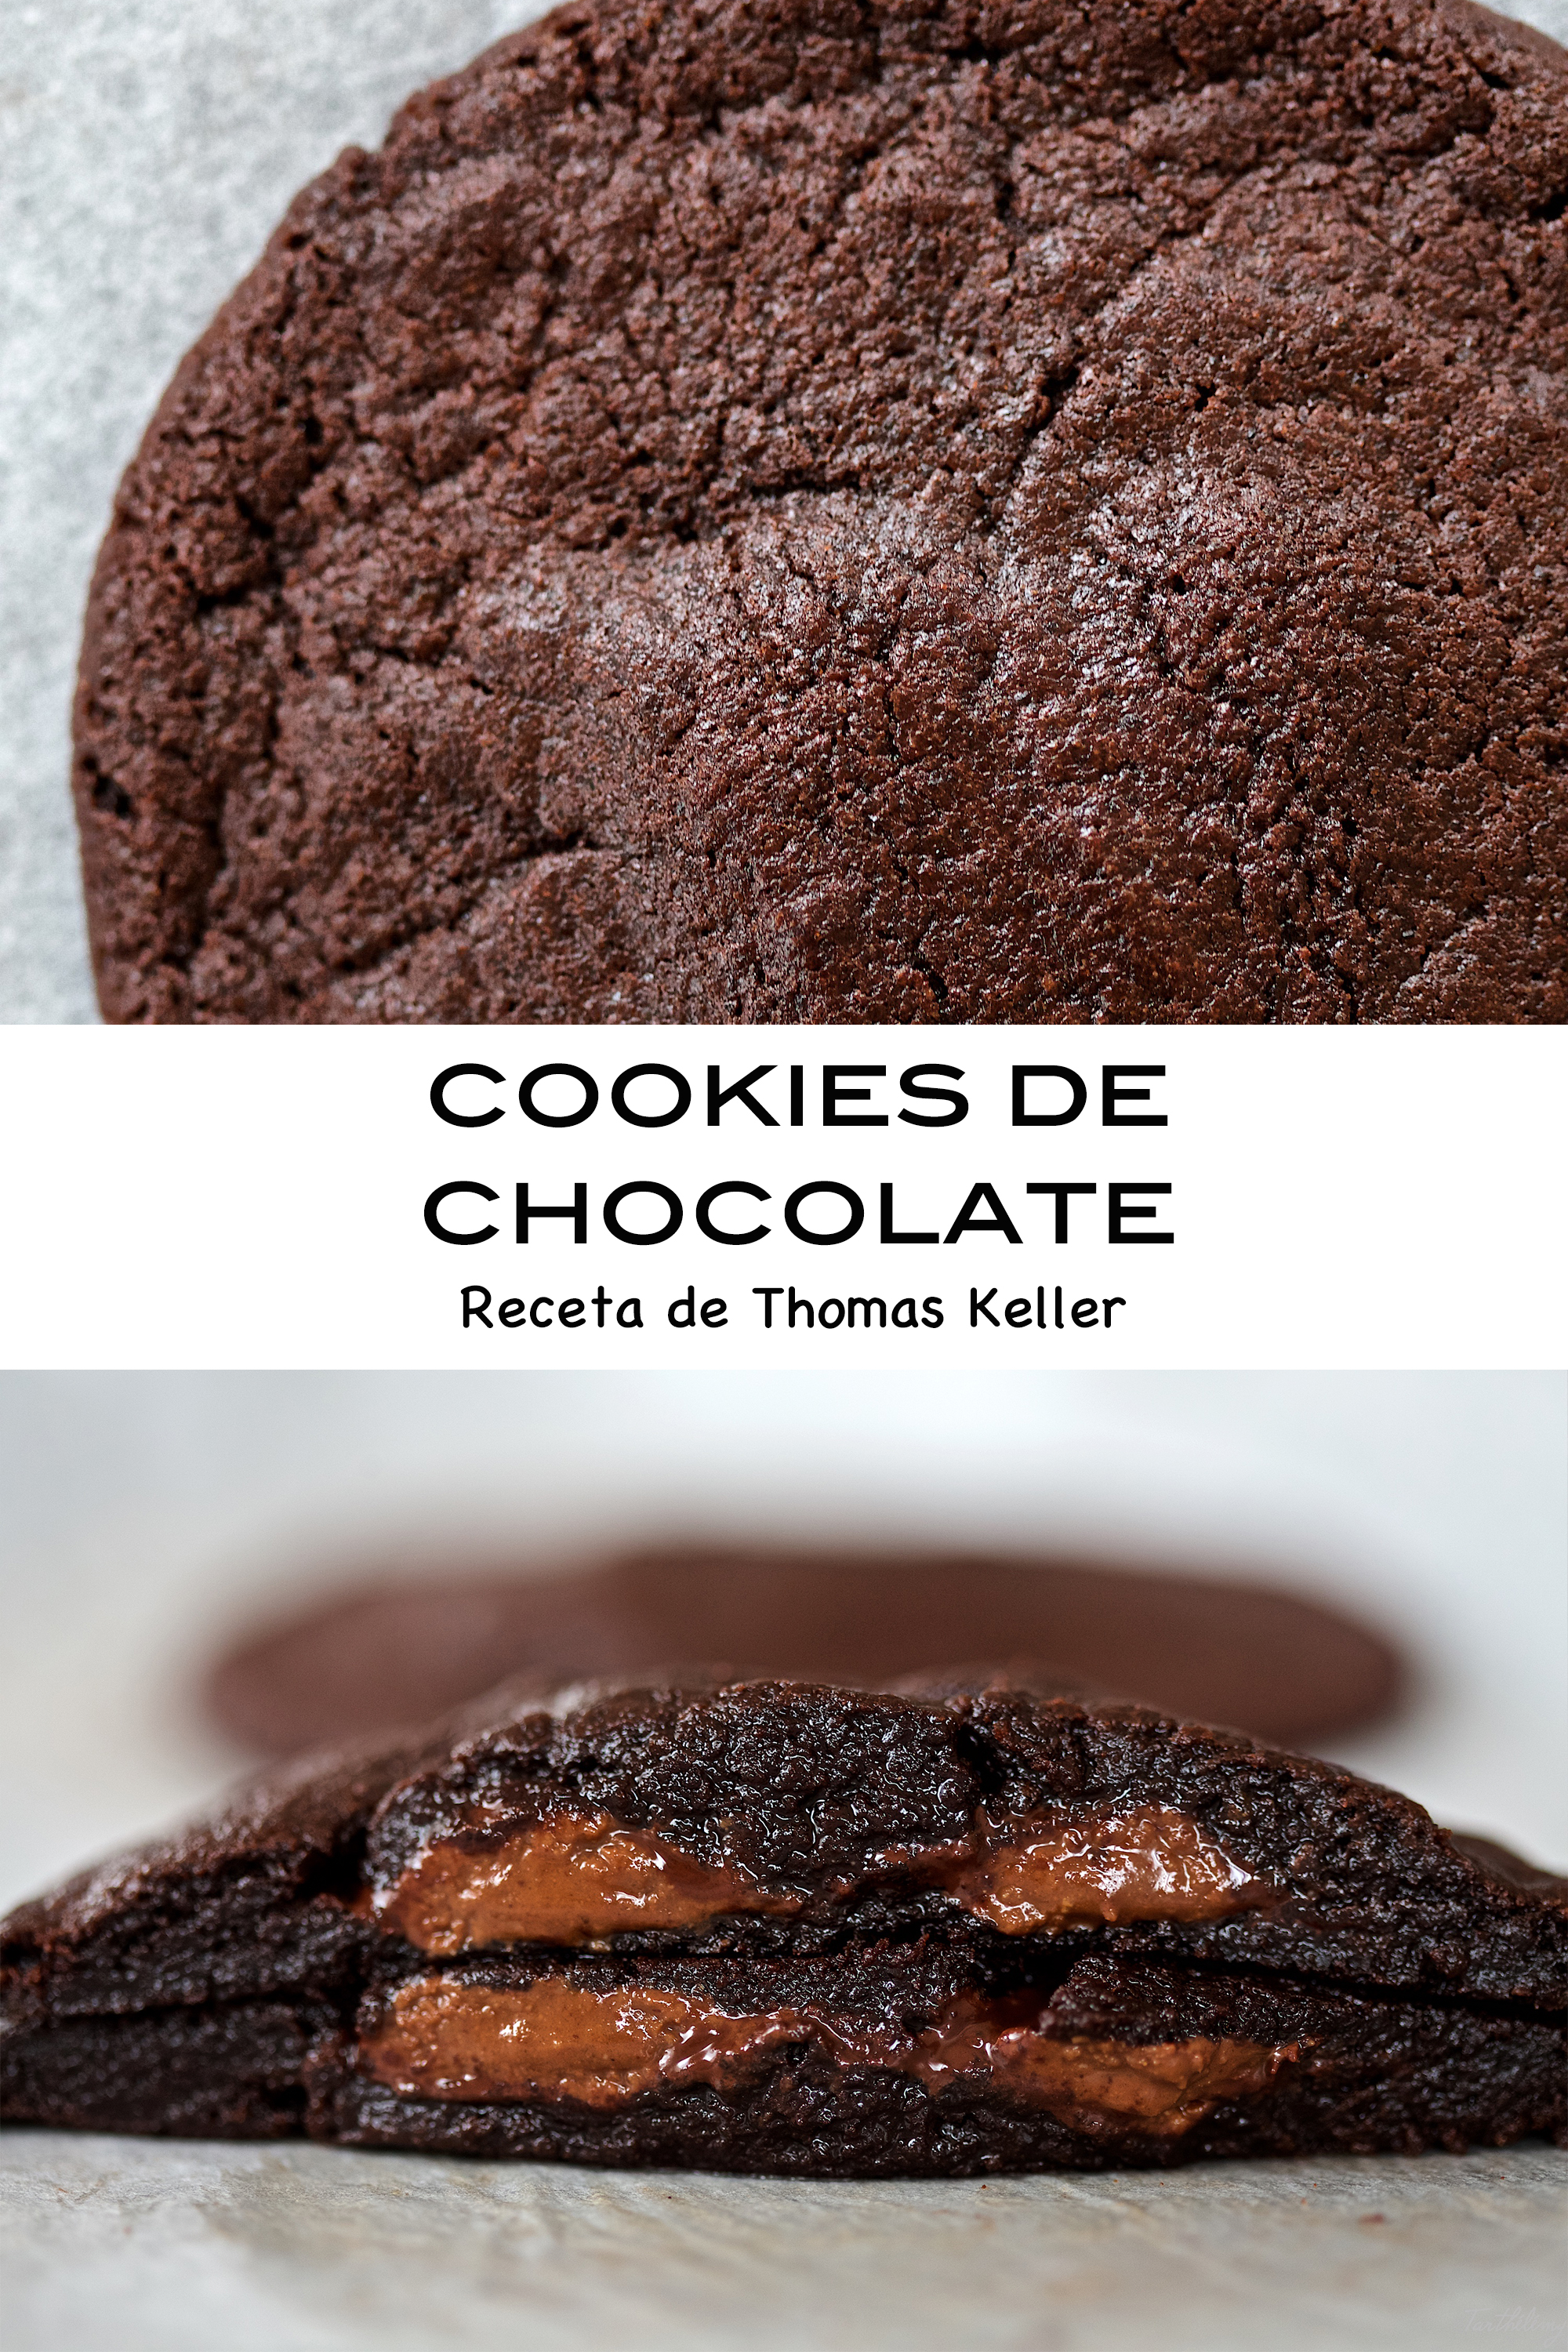 Cookies de chocolate, Thomas Keller (vídeo receta)